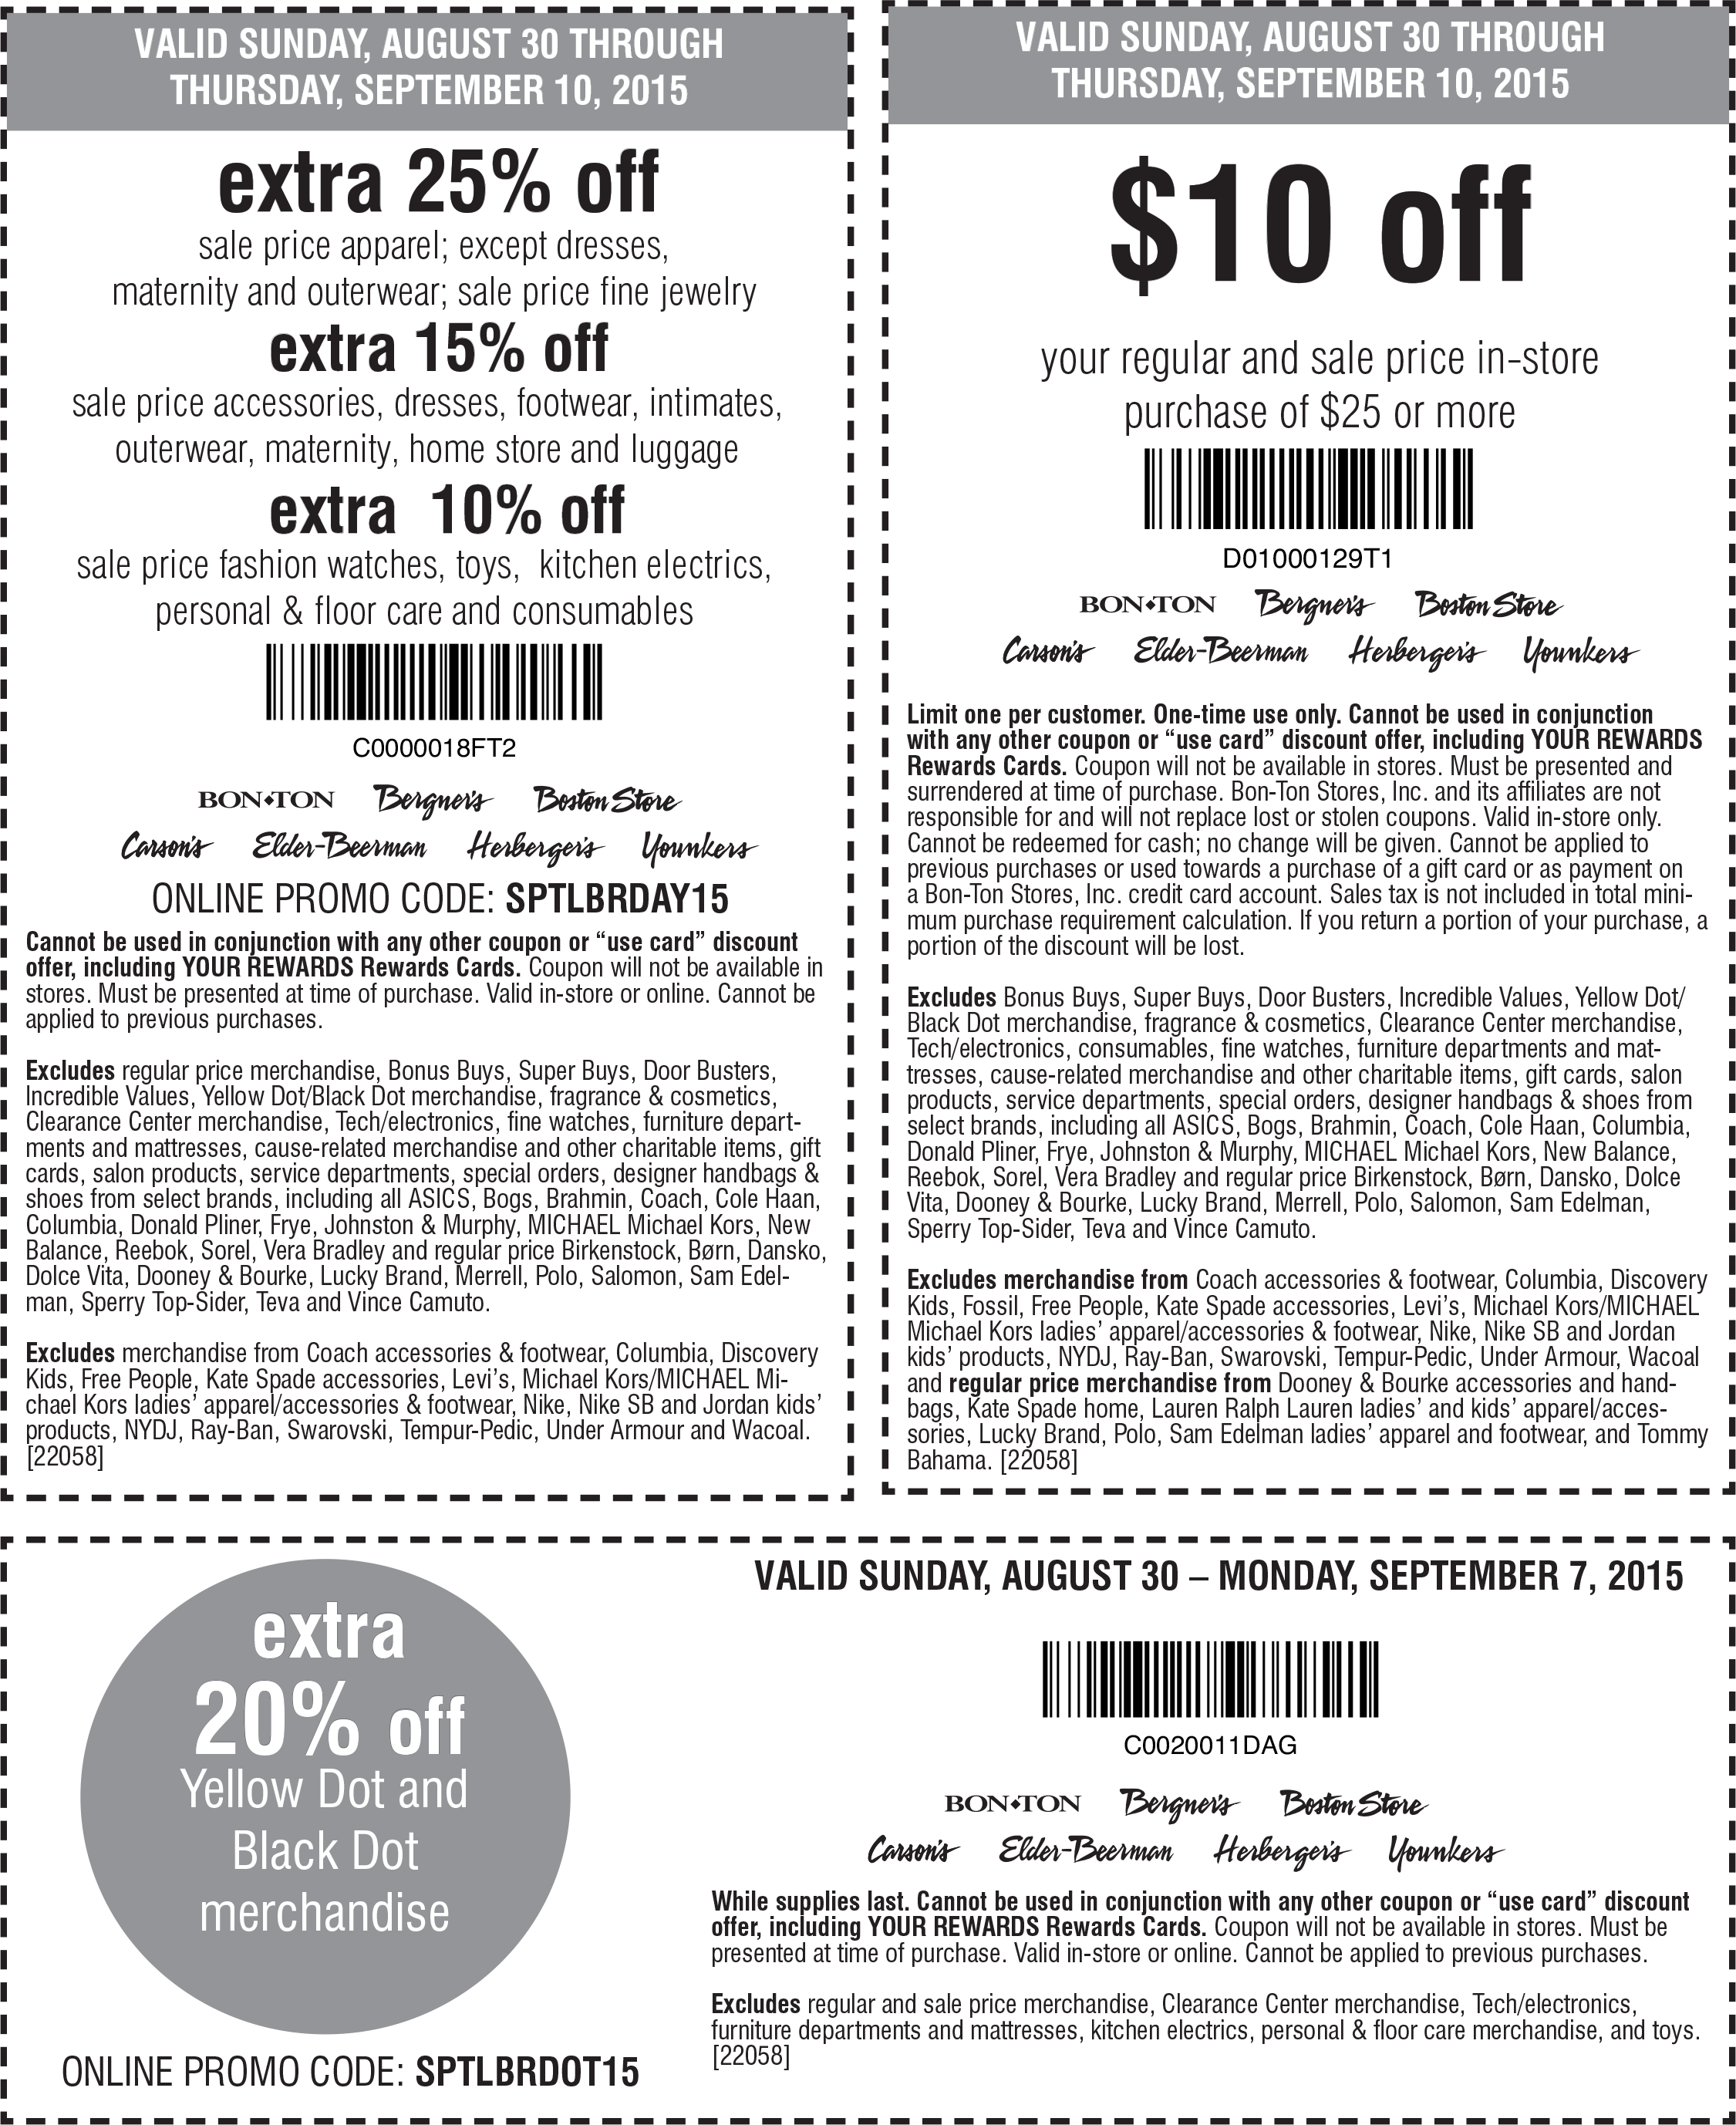 Bon Ton Coupon November 2017 Extra 25% off sale items & more at Carsons, Bon Ton & sisters stores, or online via promo code SPTLBRDAY15